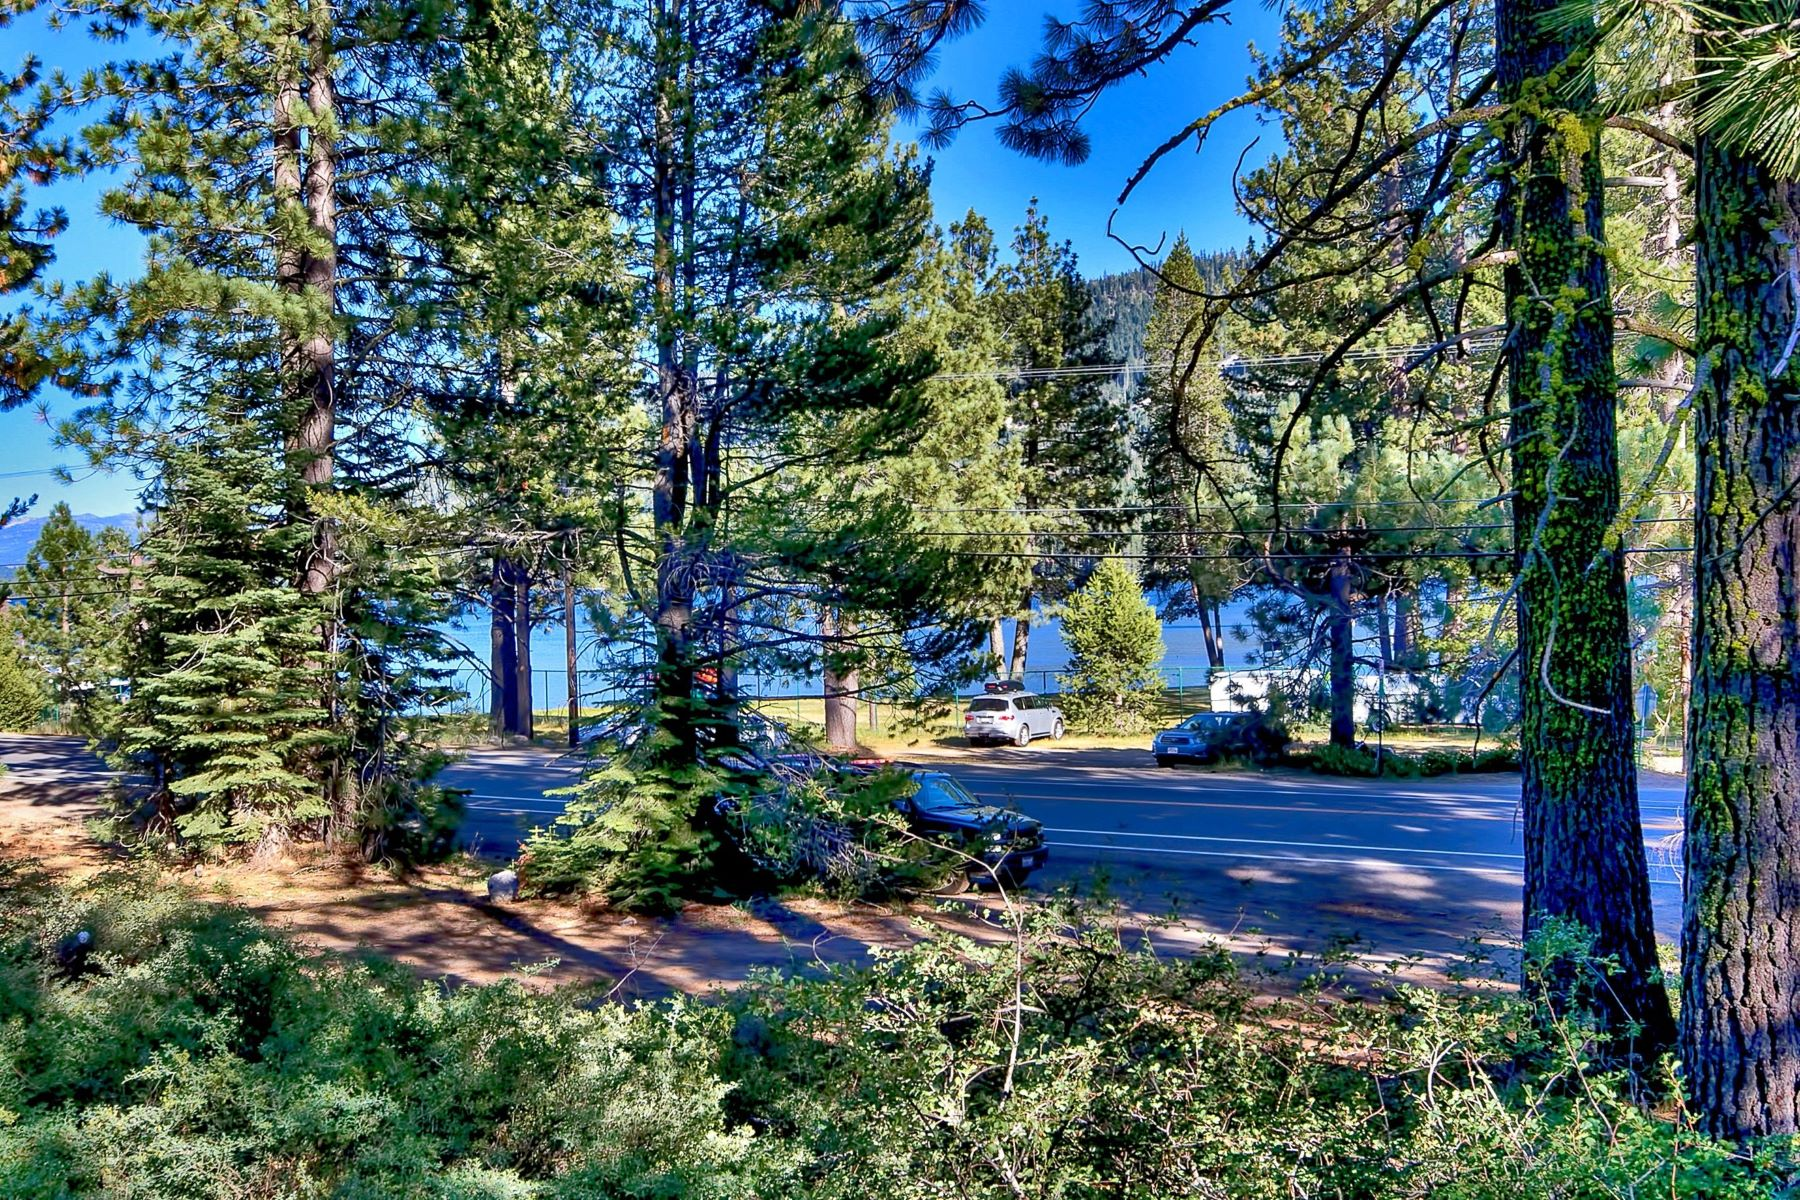 Additional photo for property listing at 15900 Donner Pass Rd , Truckee, CA 96161 15900 Donner Pass Rd Truckee, California 96161 United States